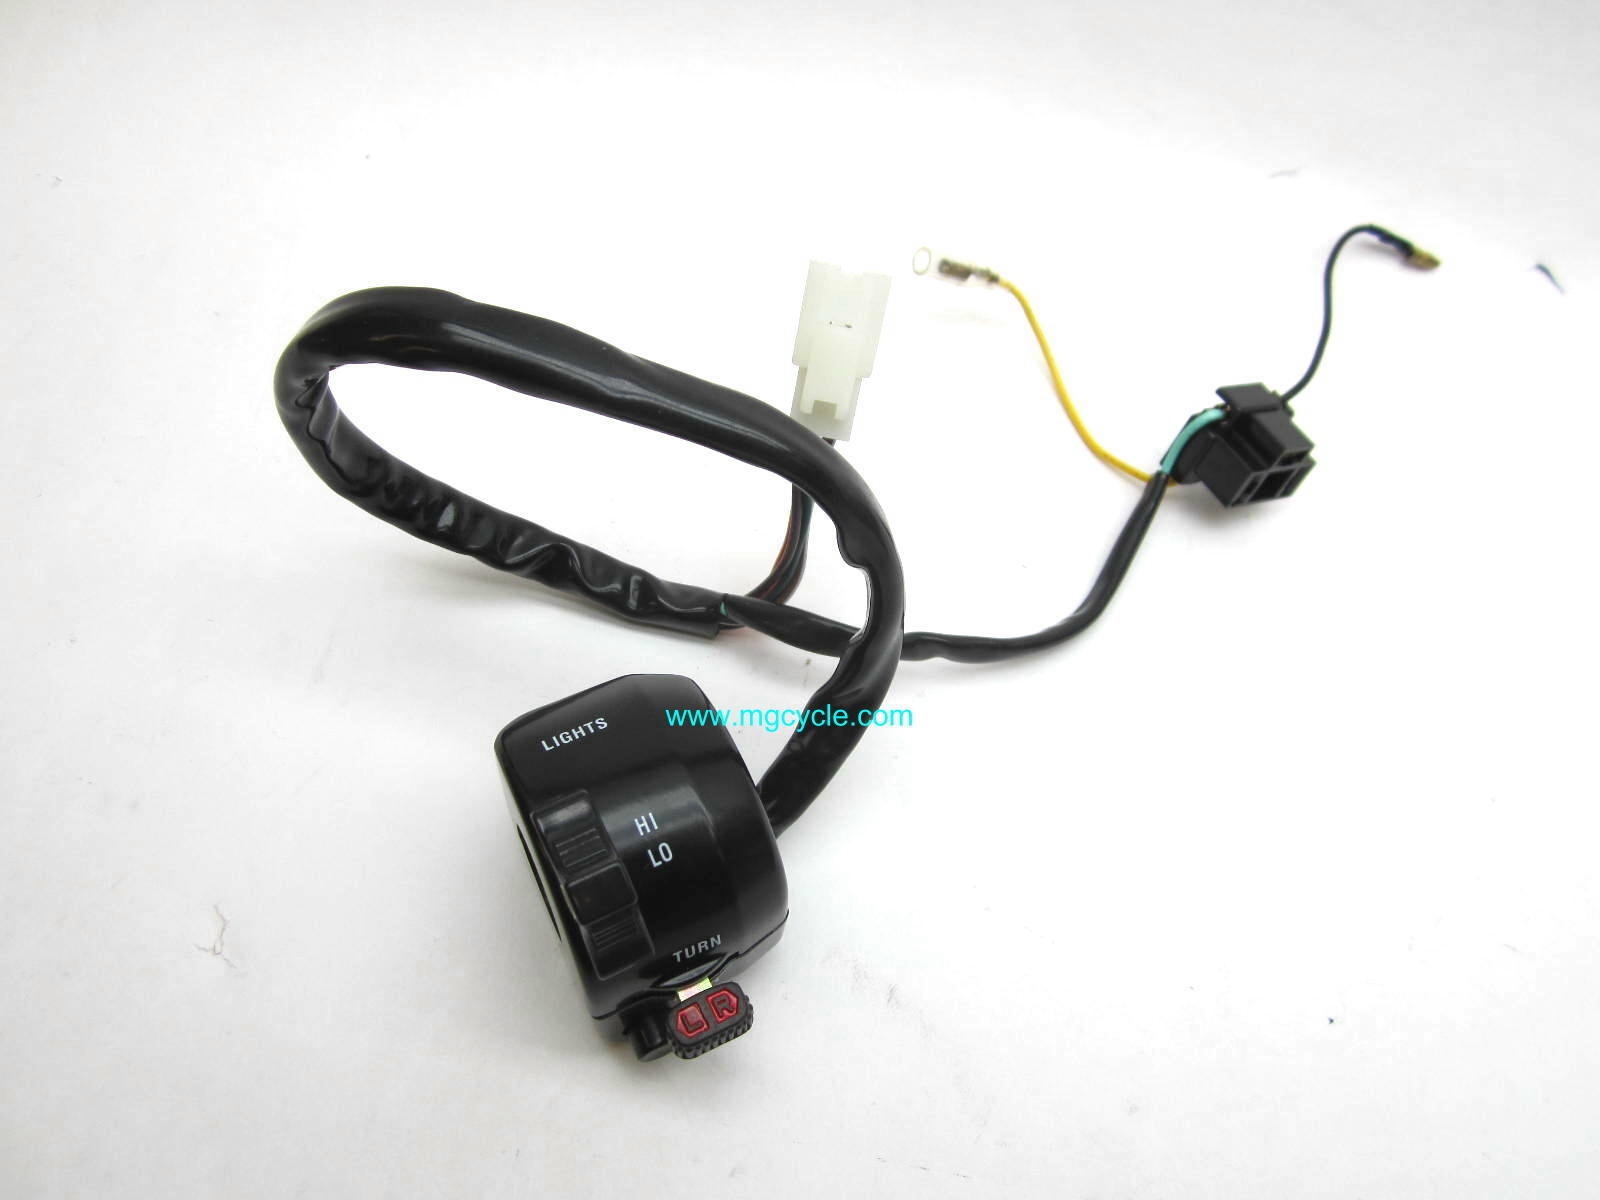 Lights horn turn signal Universal Yamaha left handlebar switch